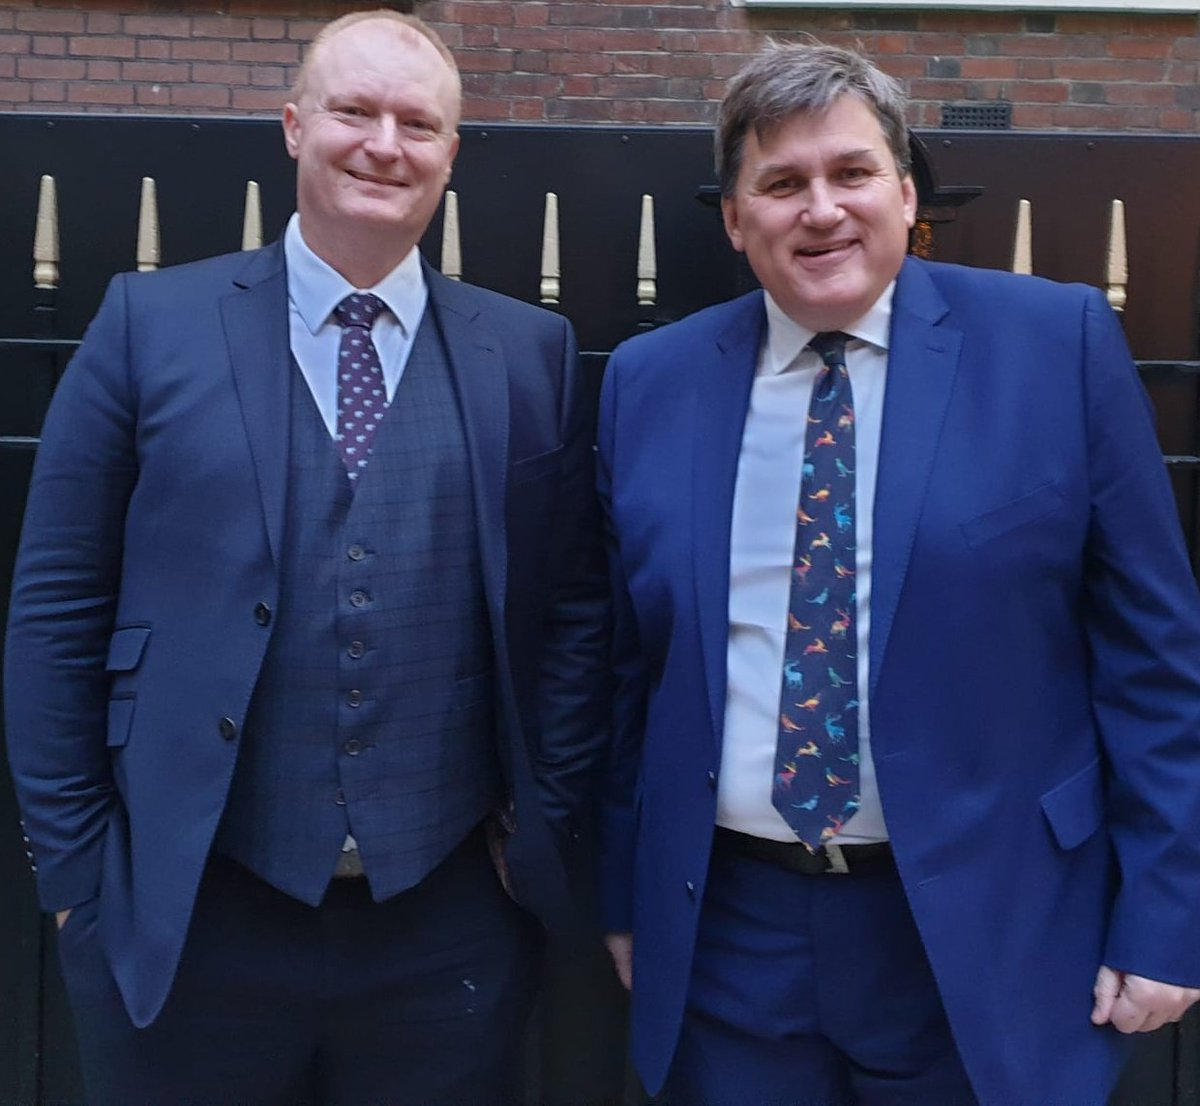 A good day today spending time with Policing Minister @Kitmalthouse discussing policing priorities in St Helens. Being brought up in Merseyside he knows the town well and the challenges that have to be addressed @Conservatives